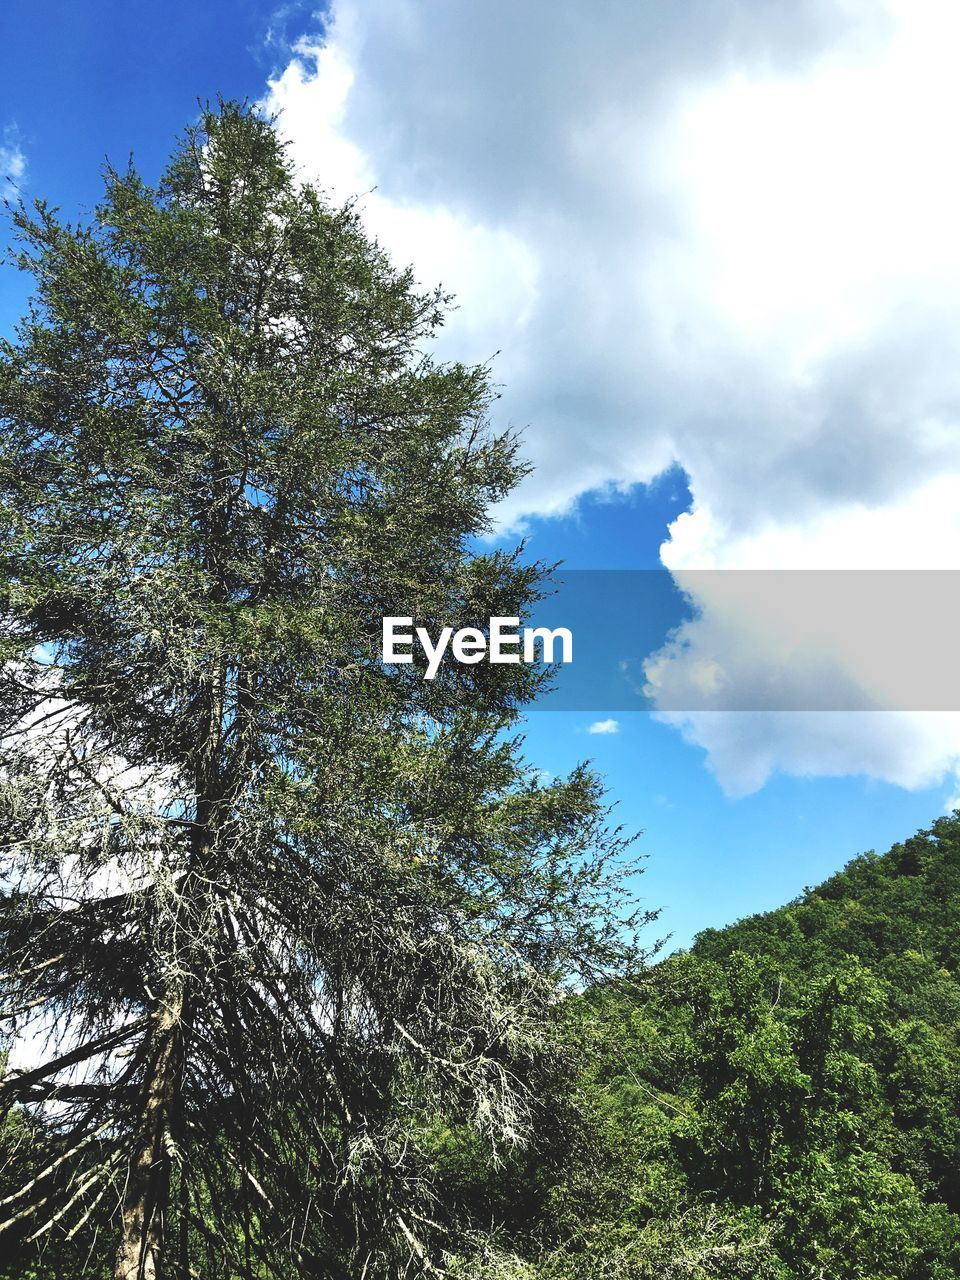 tree, nature, sky, beauty in nature, day, cloud - sky, low angle view, tranquility, growth, outdoors, no people, scenics, tranquil scene, forest, branch